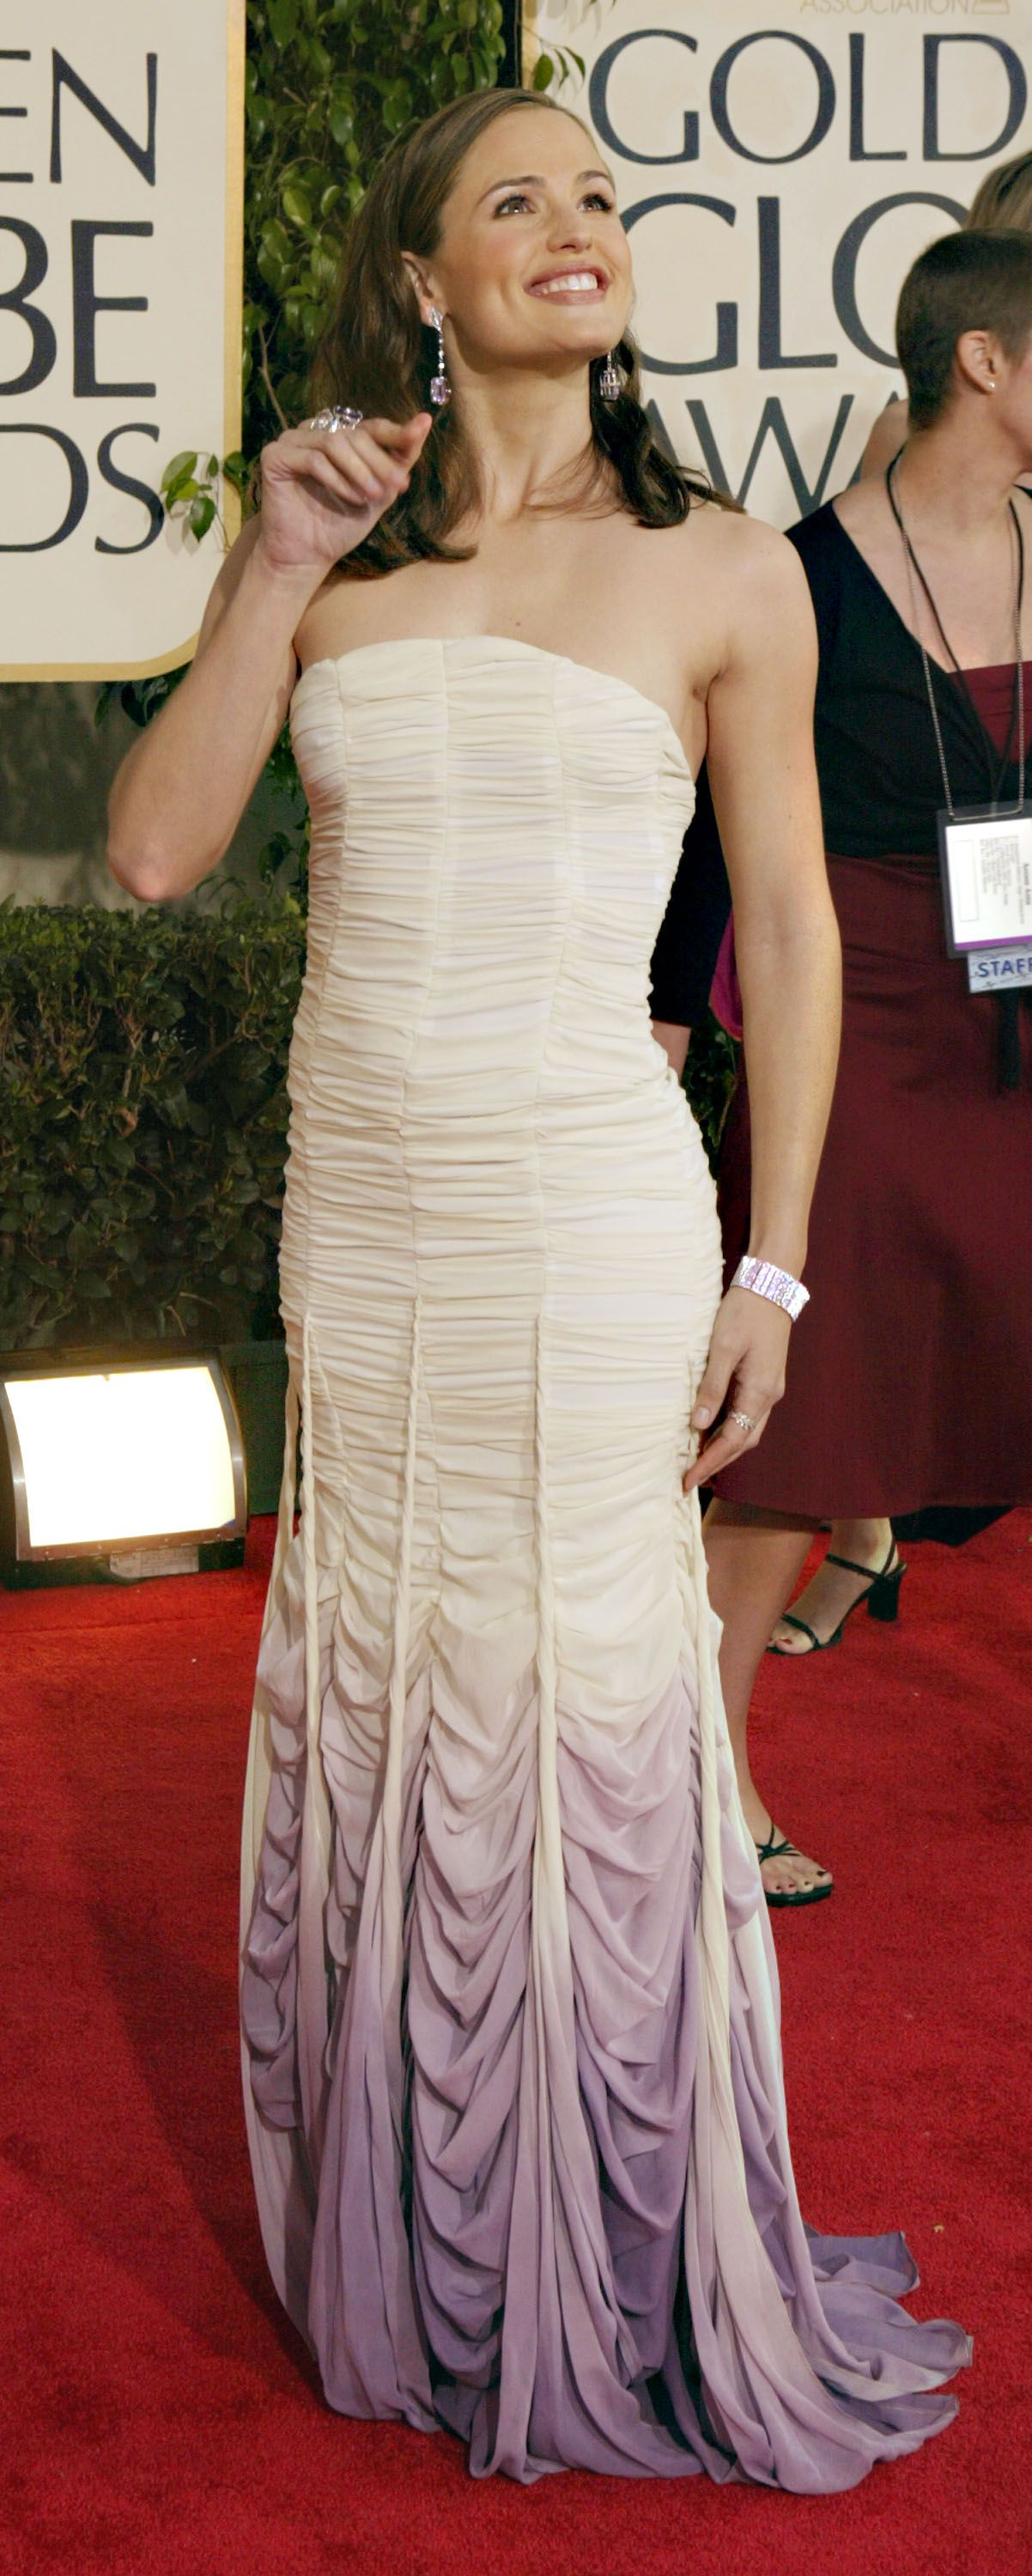 January 25, 2004 In a ruched ombré gown the 61st annual Golden Globe Awards in Beverly Hills.